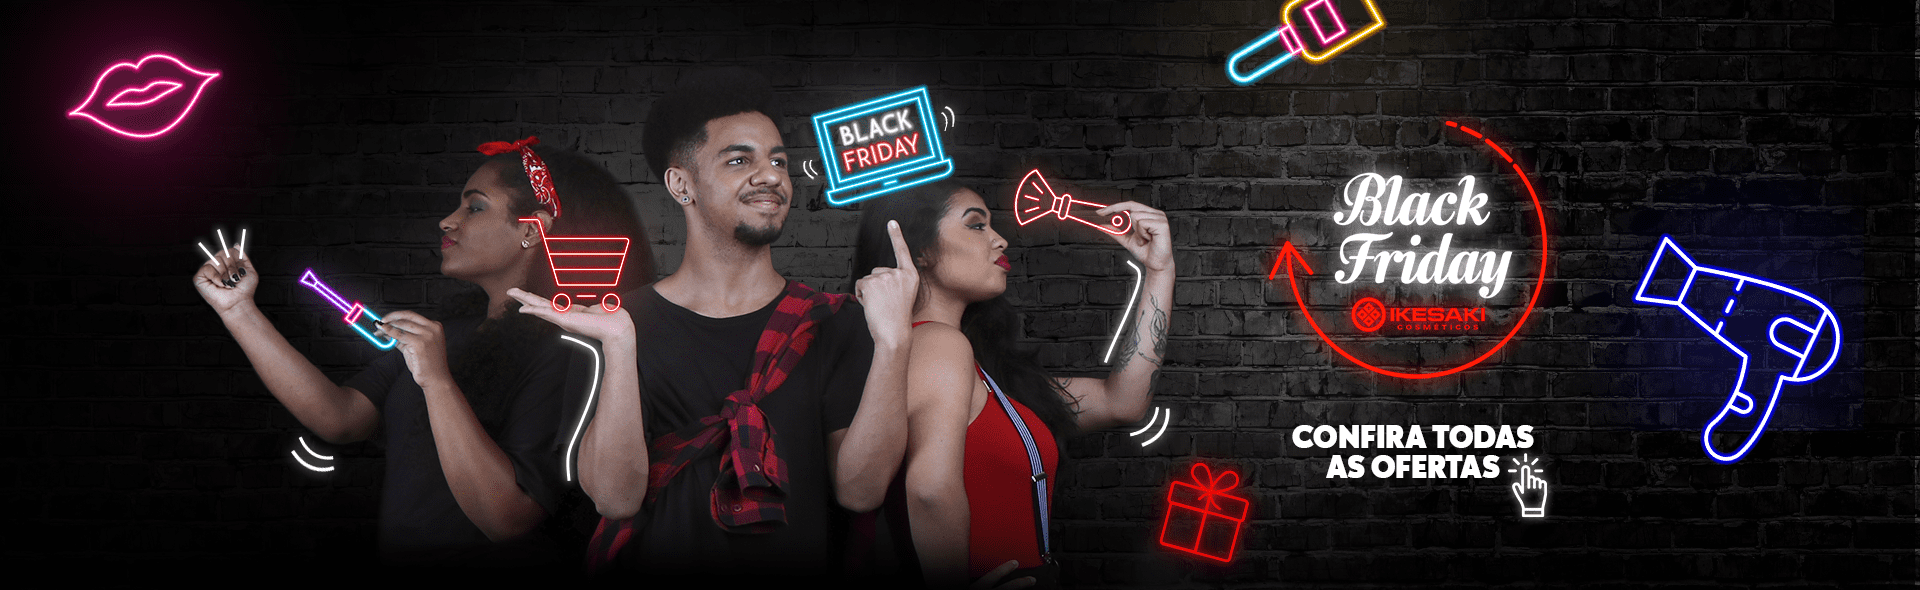 blackfriday-banner